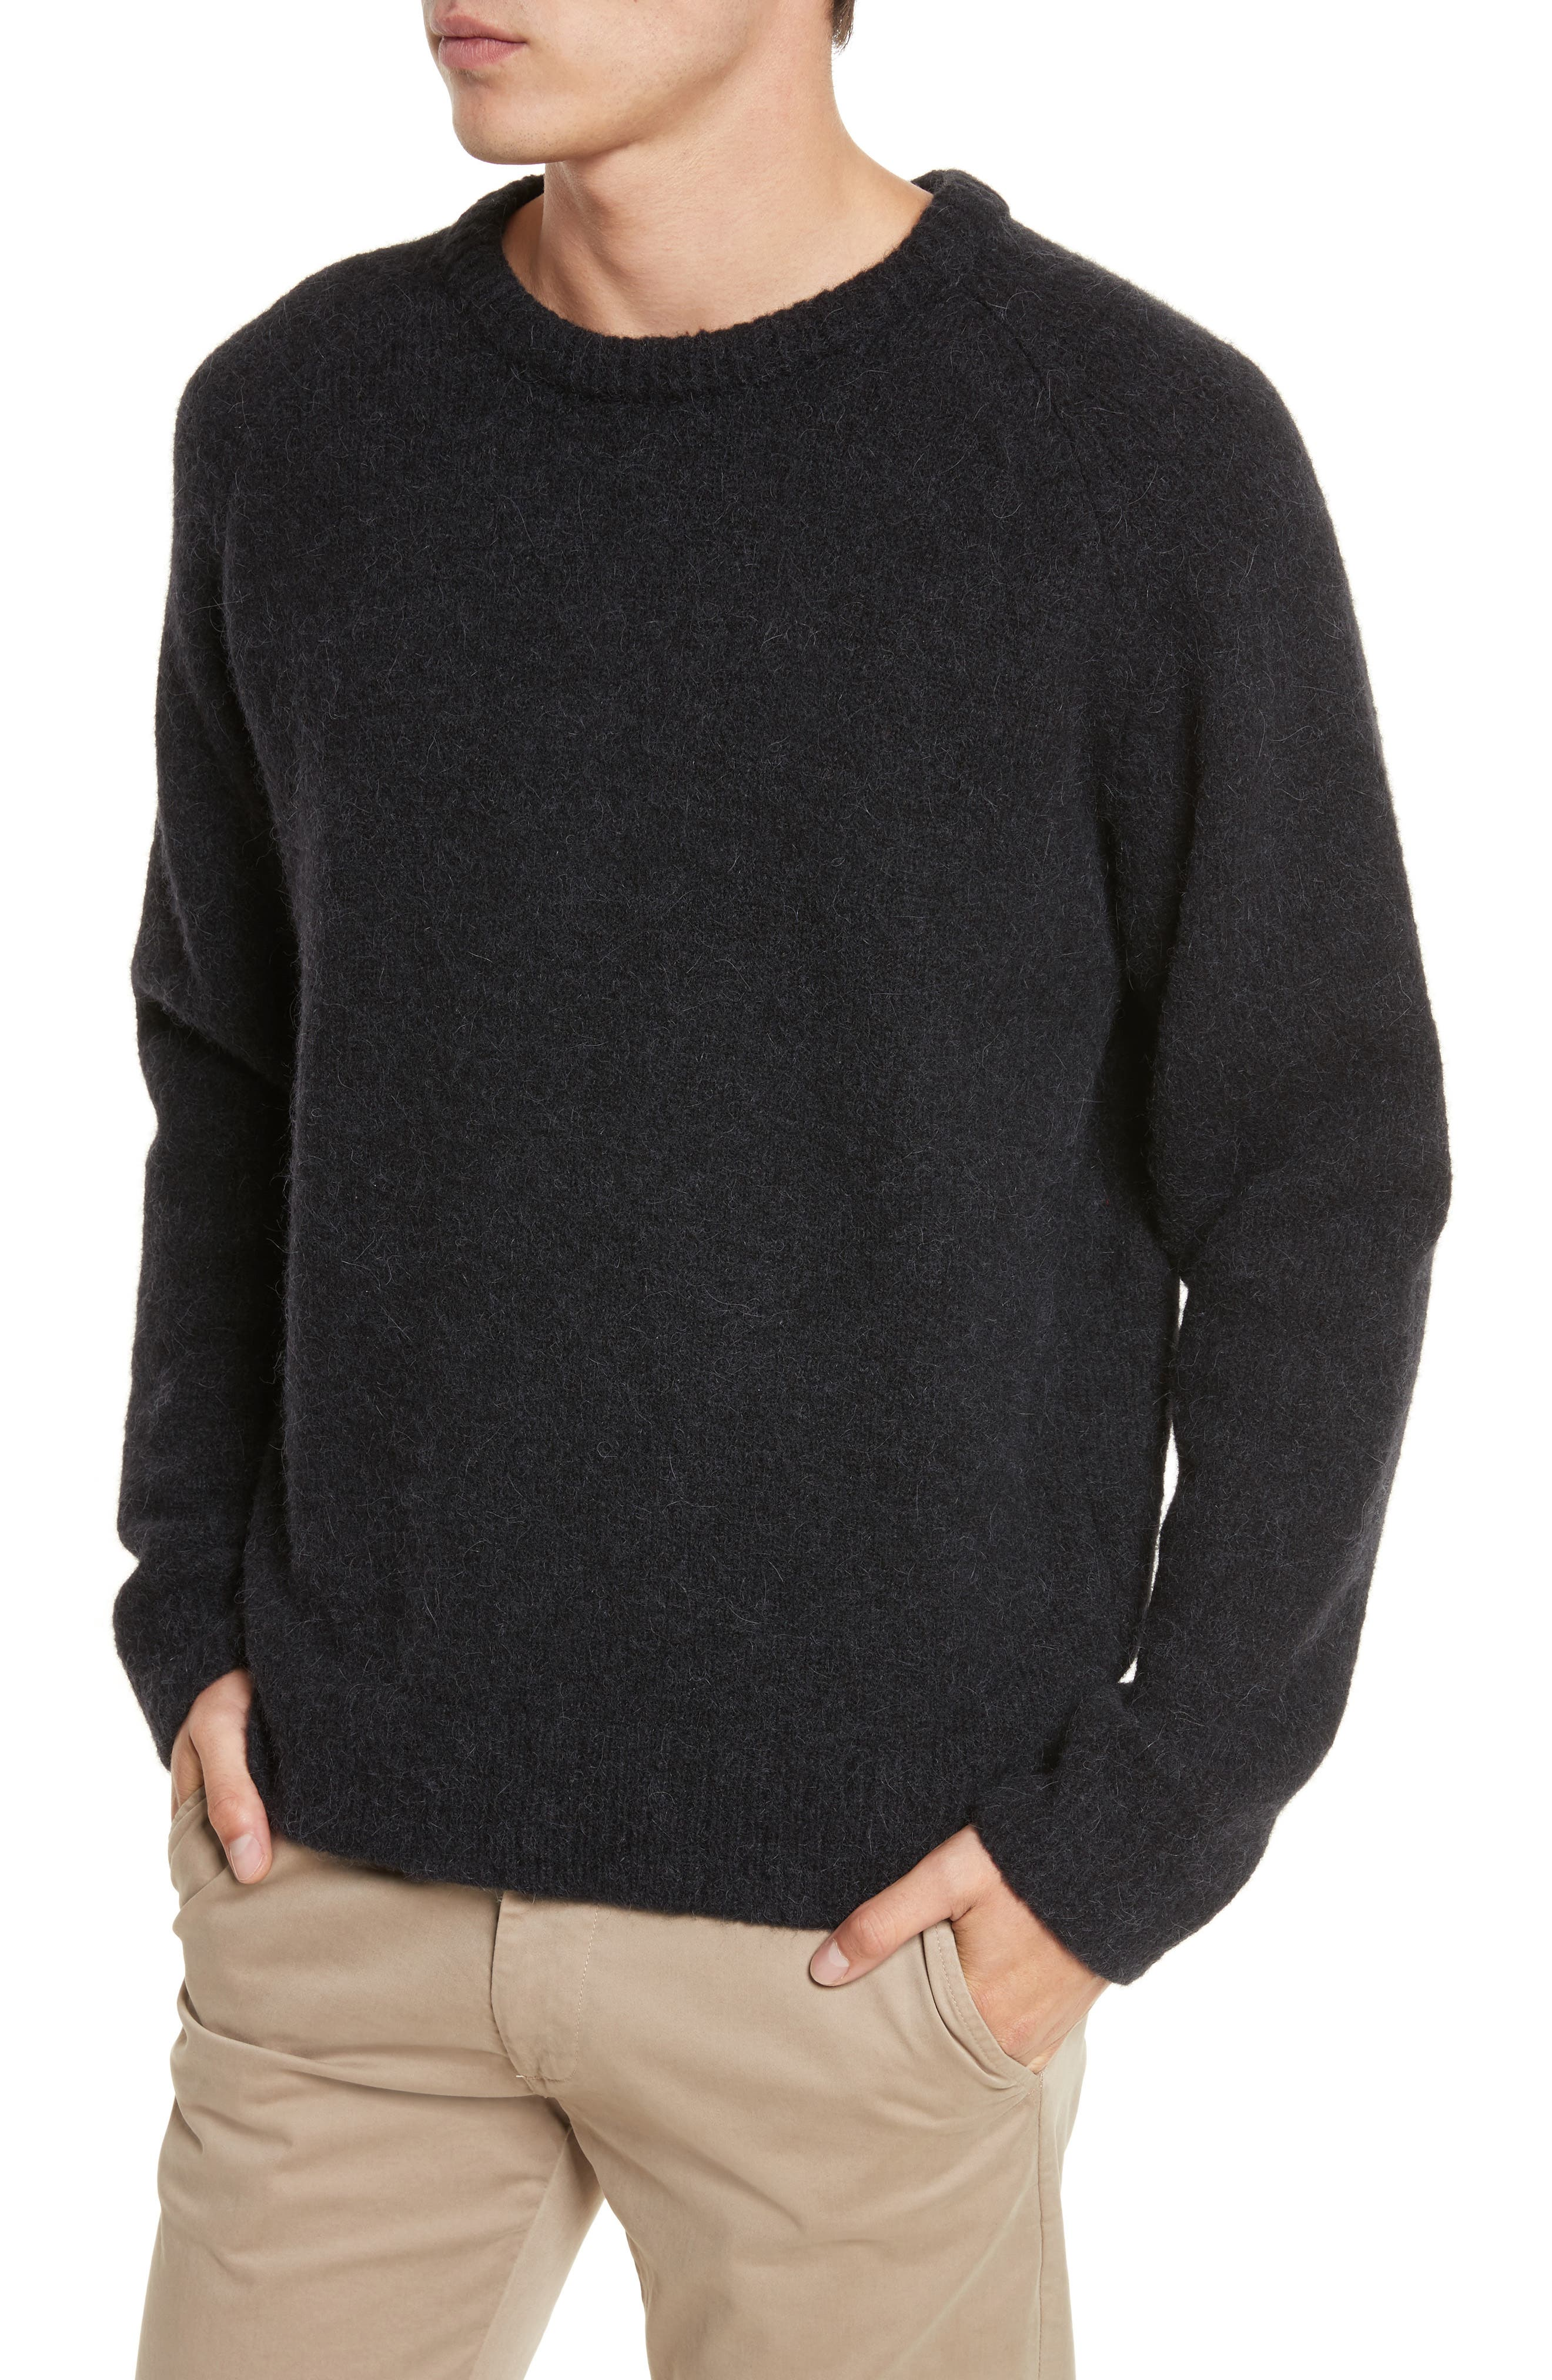 Wool Blend Crewneck Sweater,                             Alternate thumbnail 4, color,                             Black